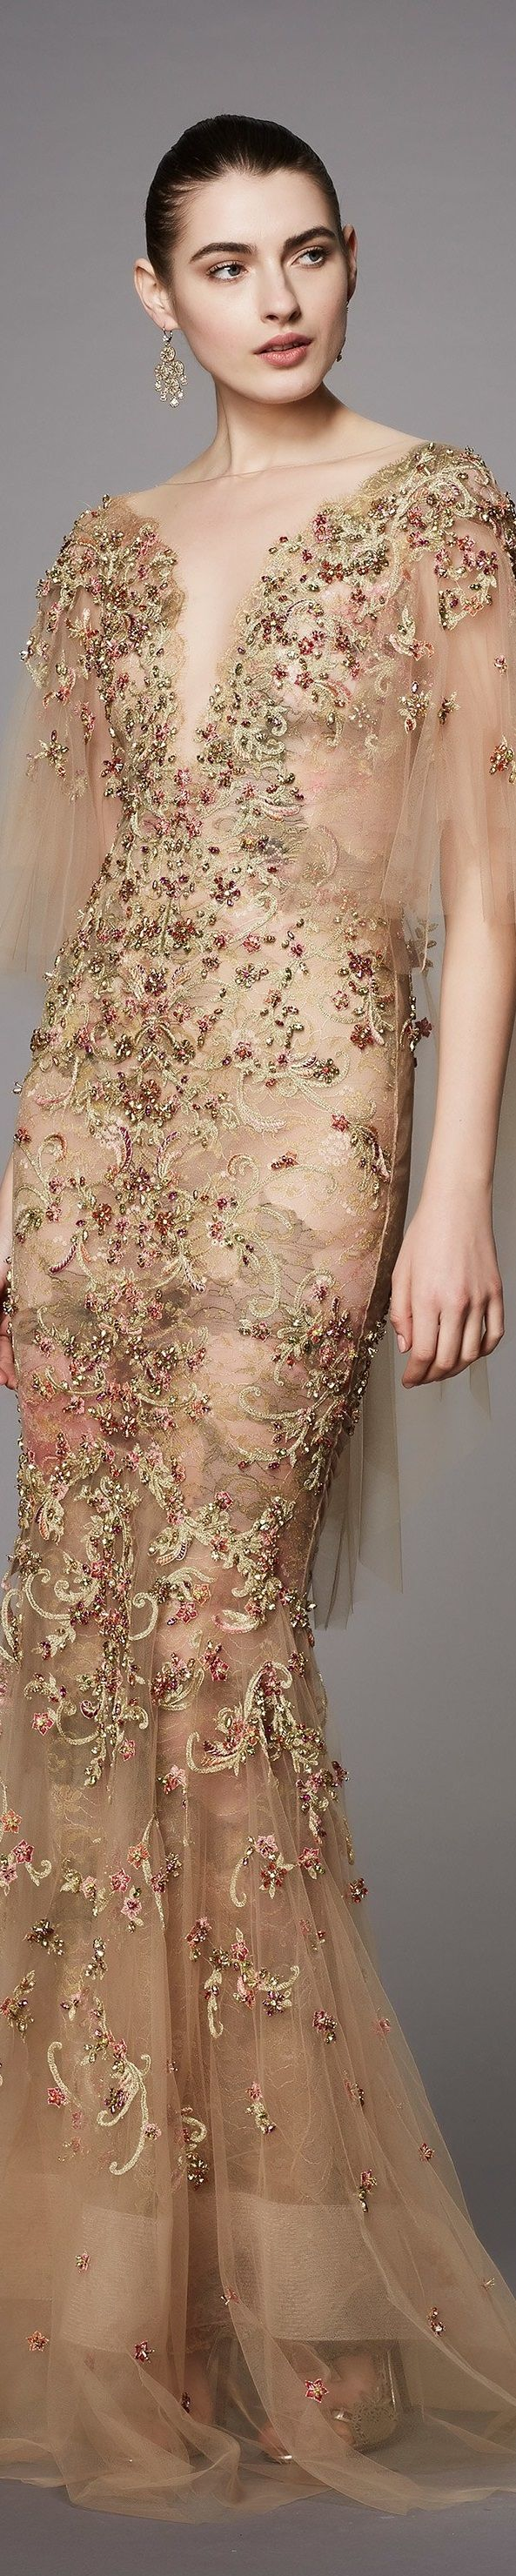 Marchesa couture pre fall 2017 vogue